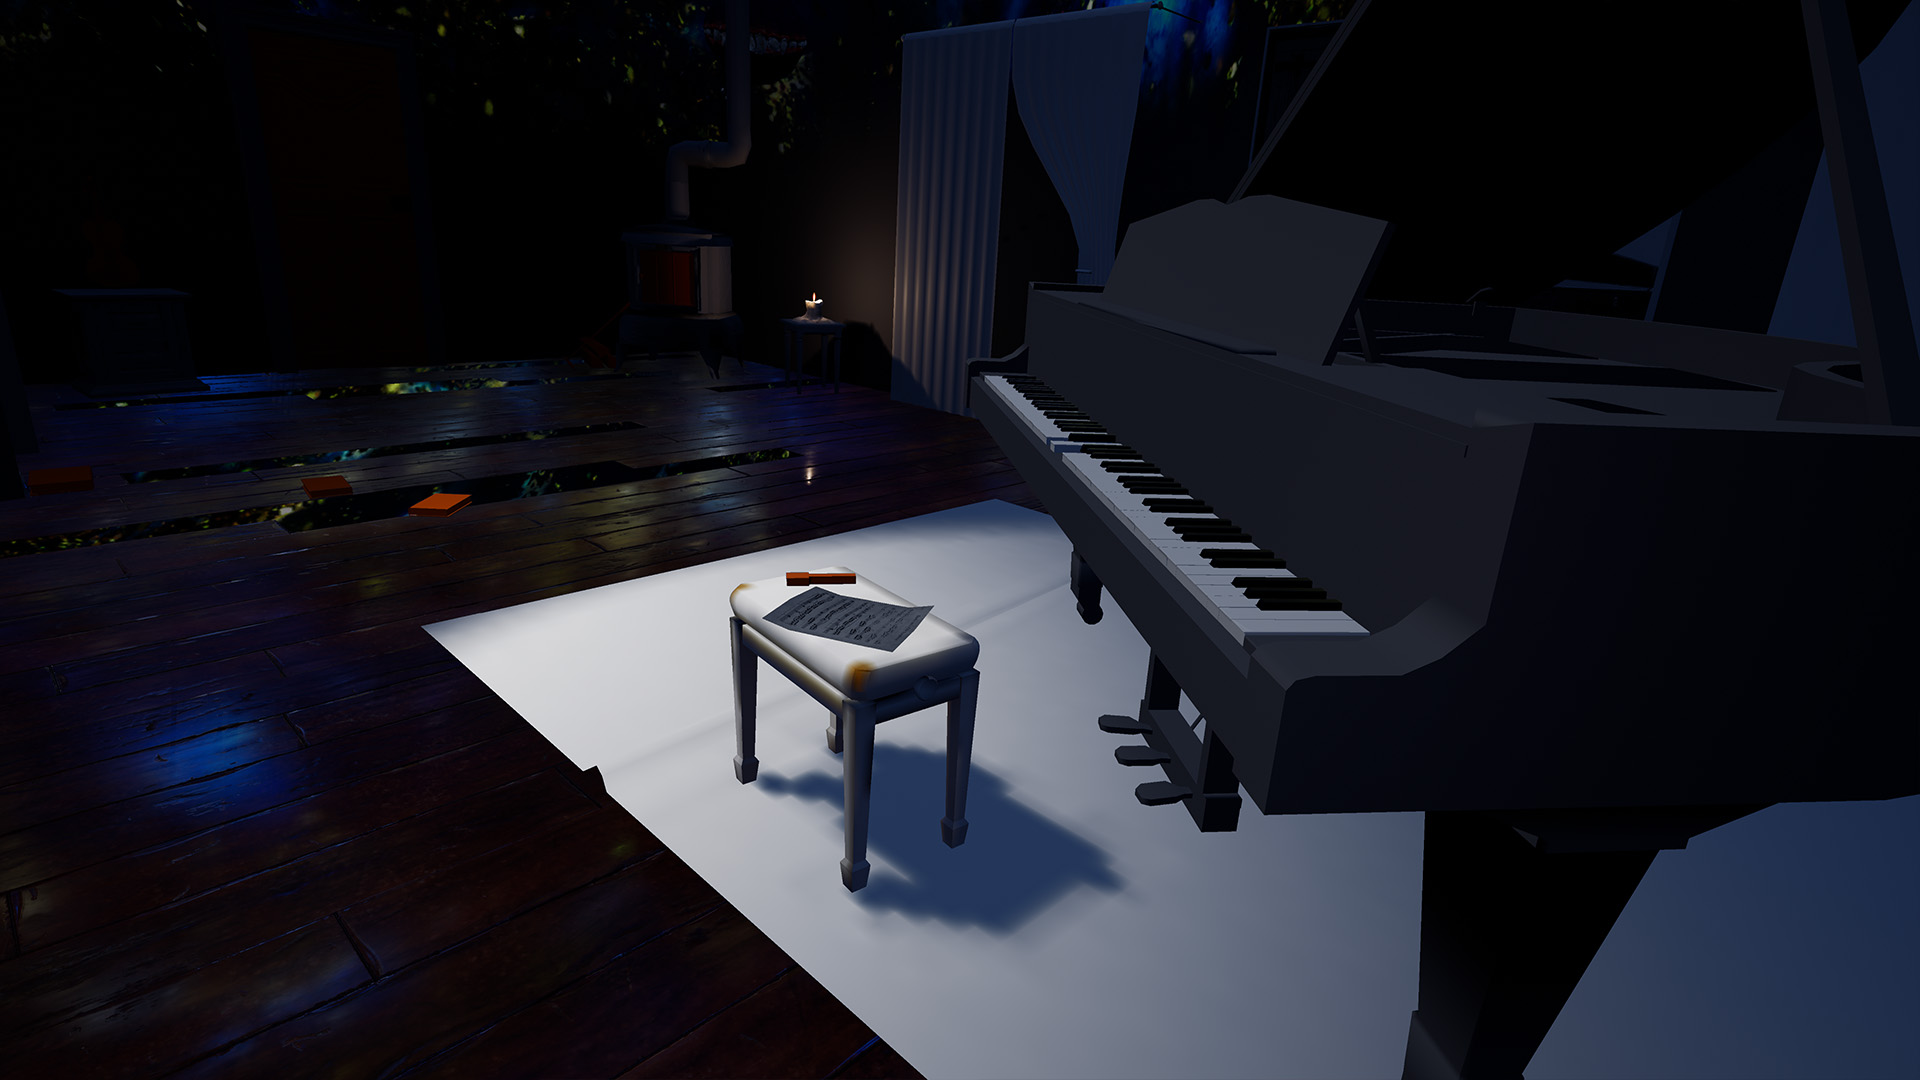 Piano in dark room